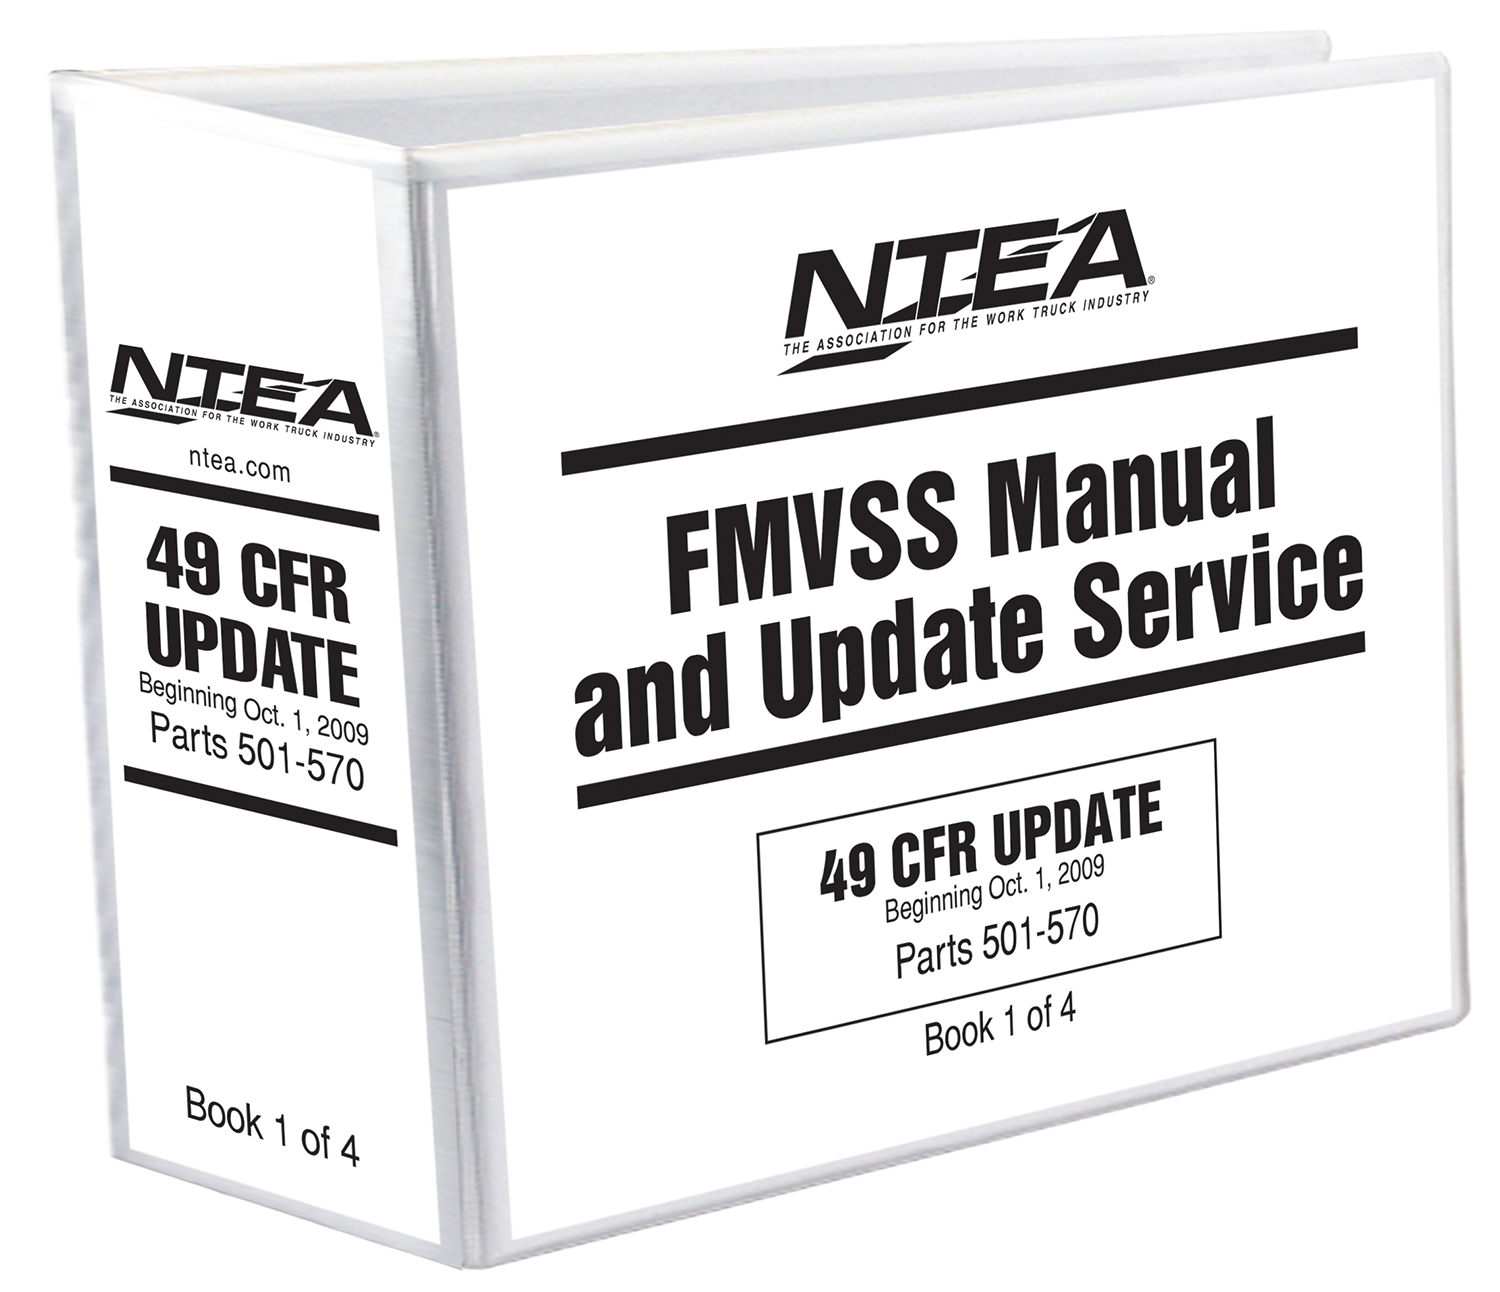 FMVSS Manual and Update Service